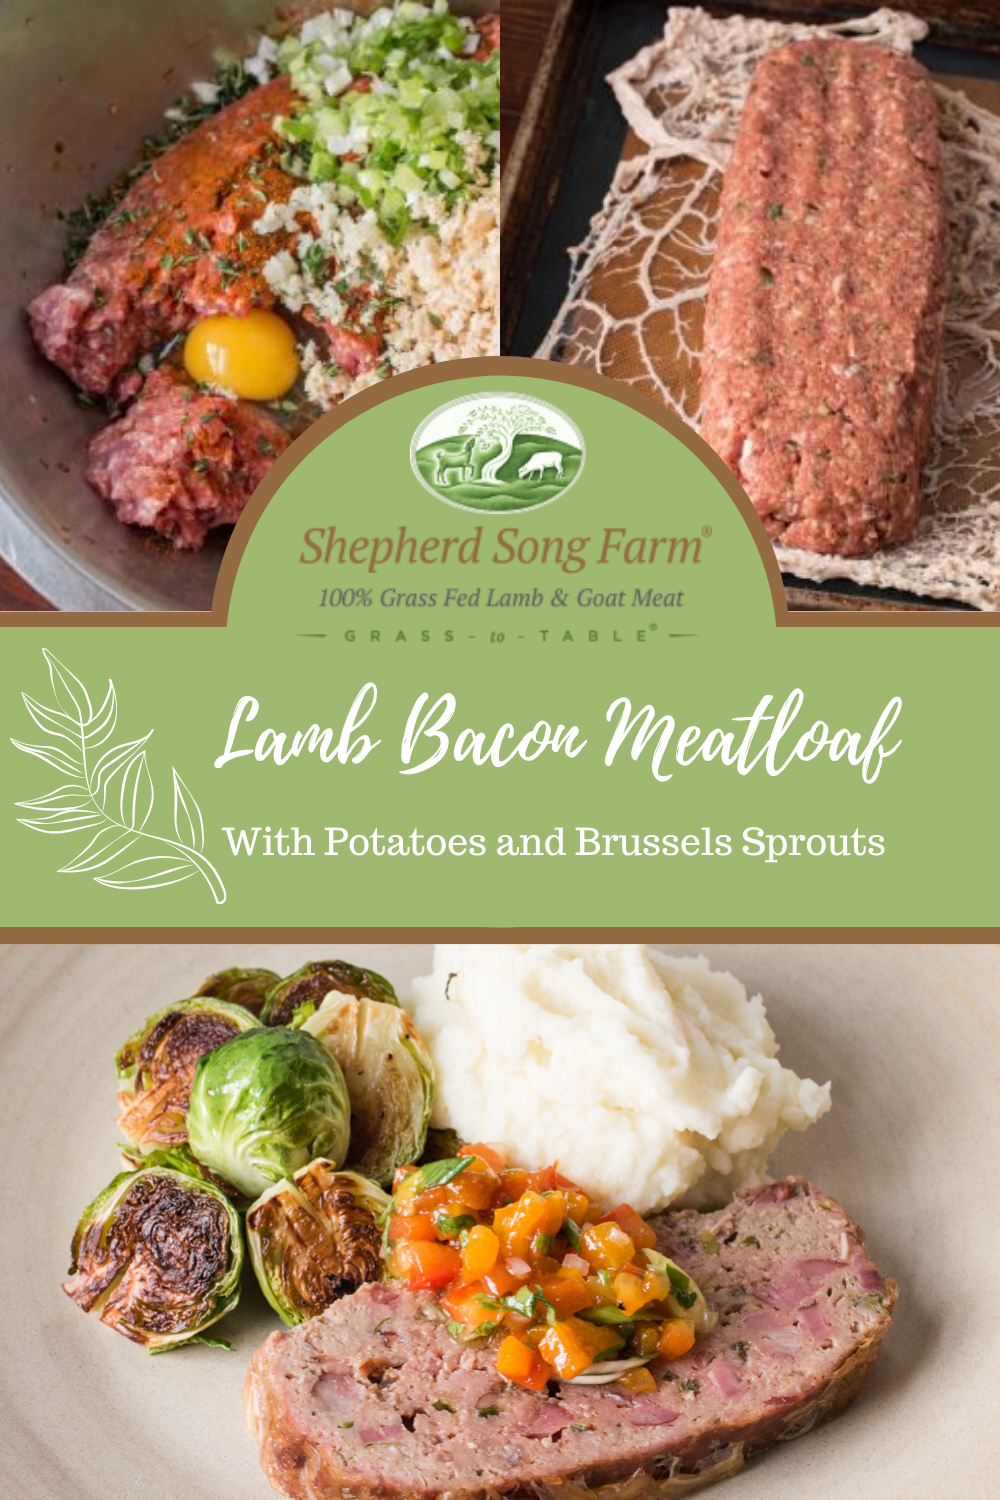 Lamb And Goat Bacon Meatloaf Shepherd Song Farm Recipe In 2020 Lamb Meatloaf Lamb Bacon Lamb Recipes